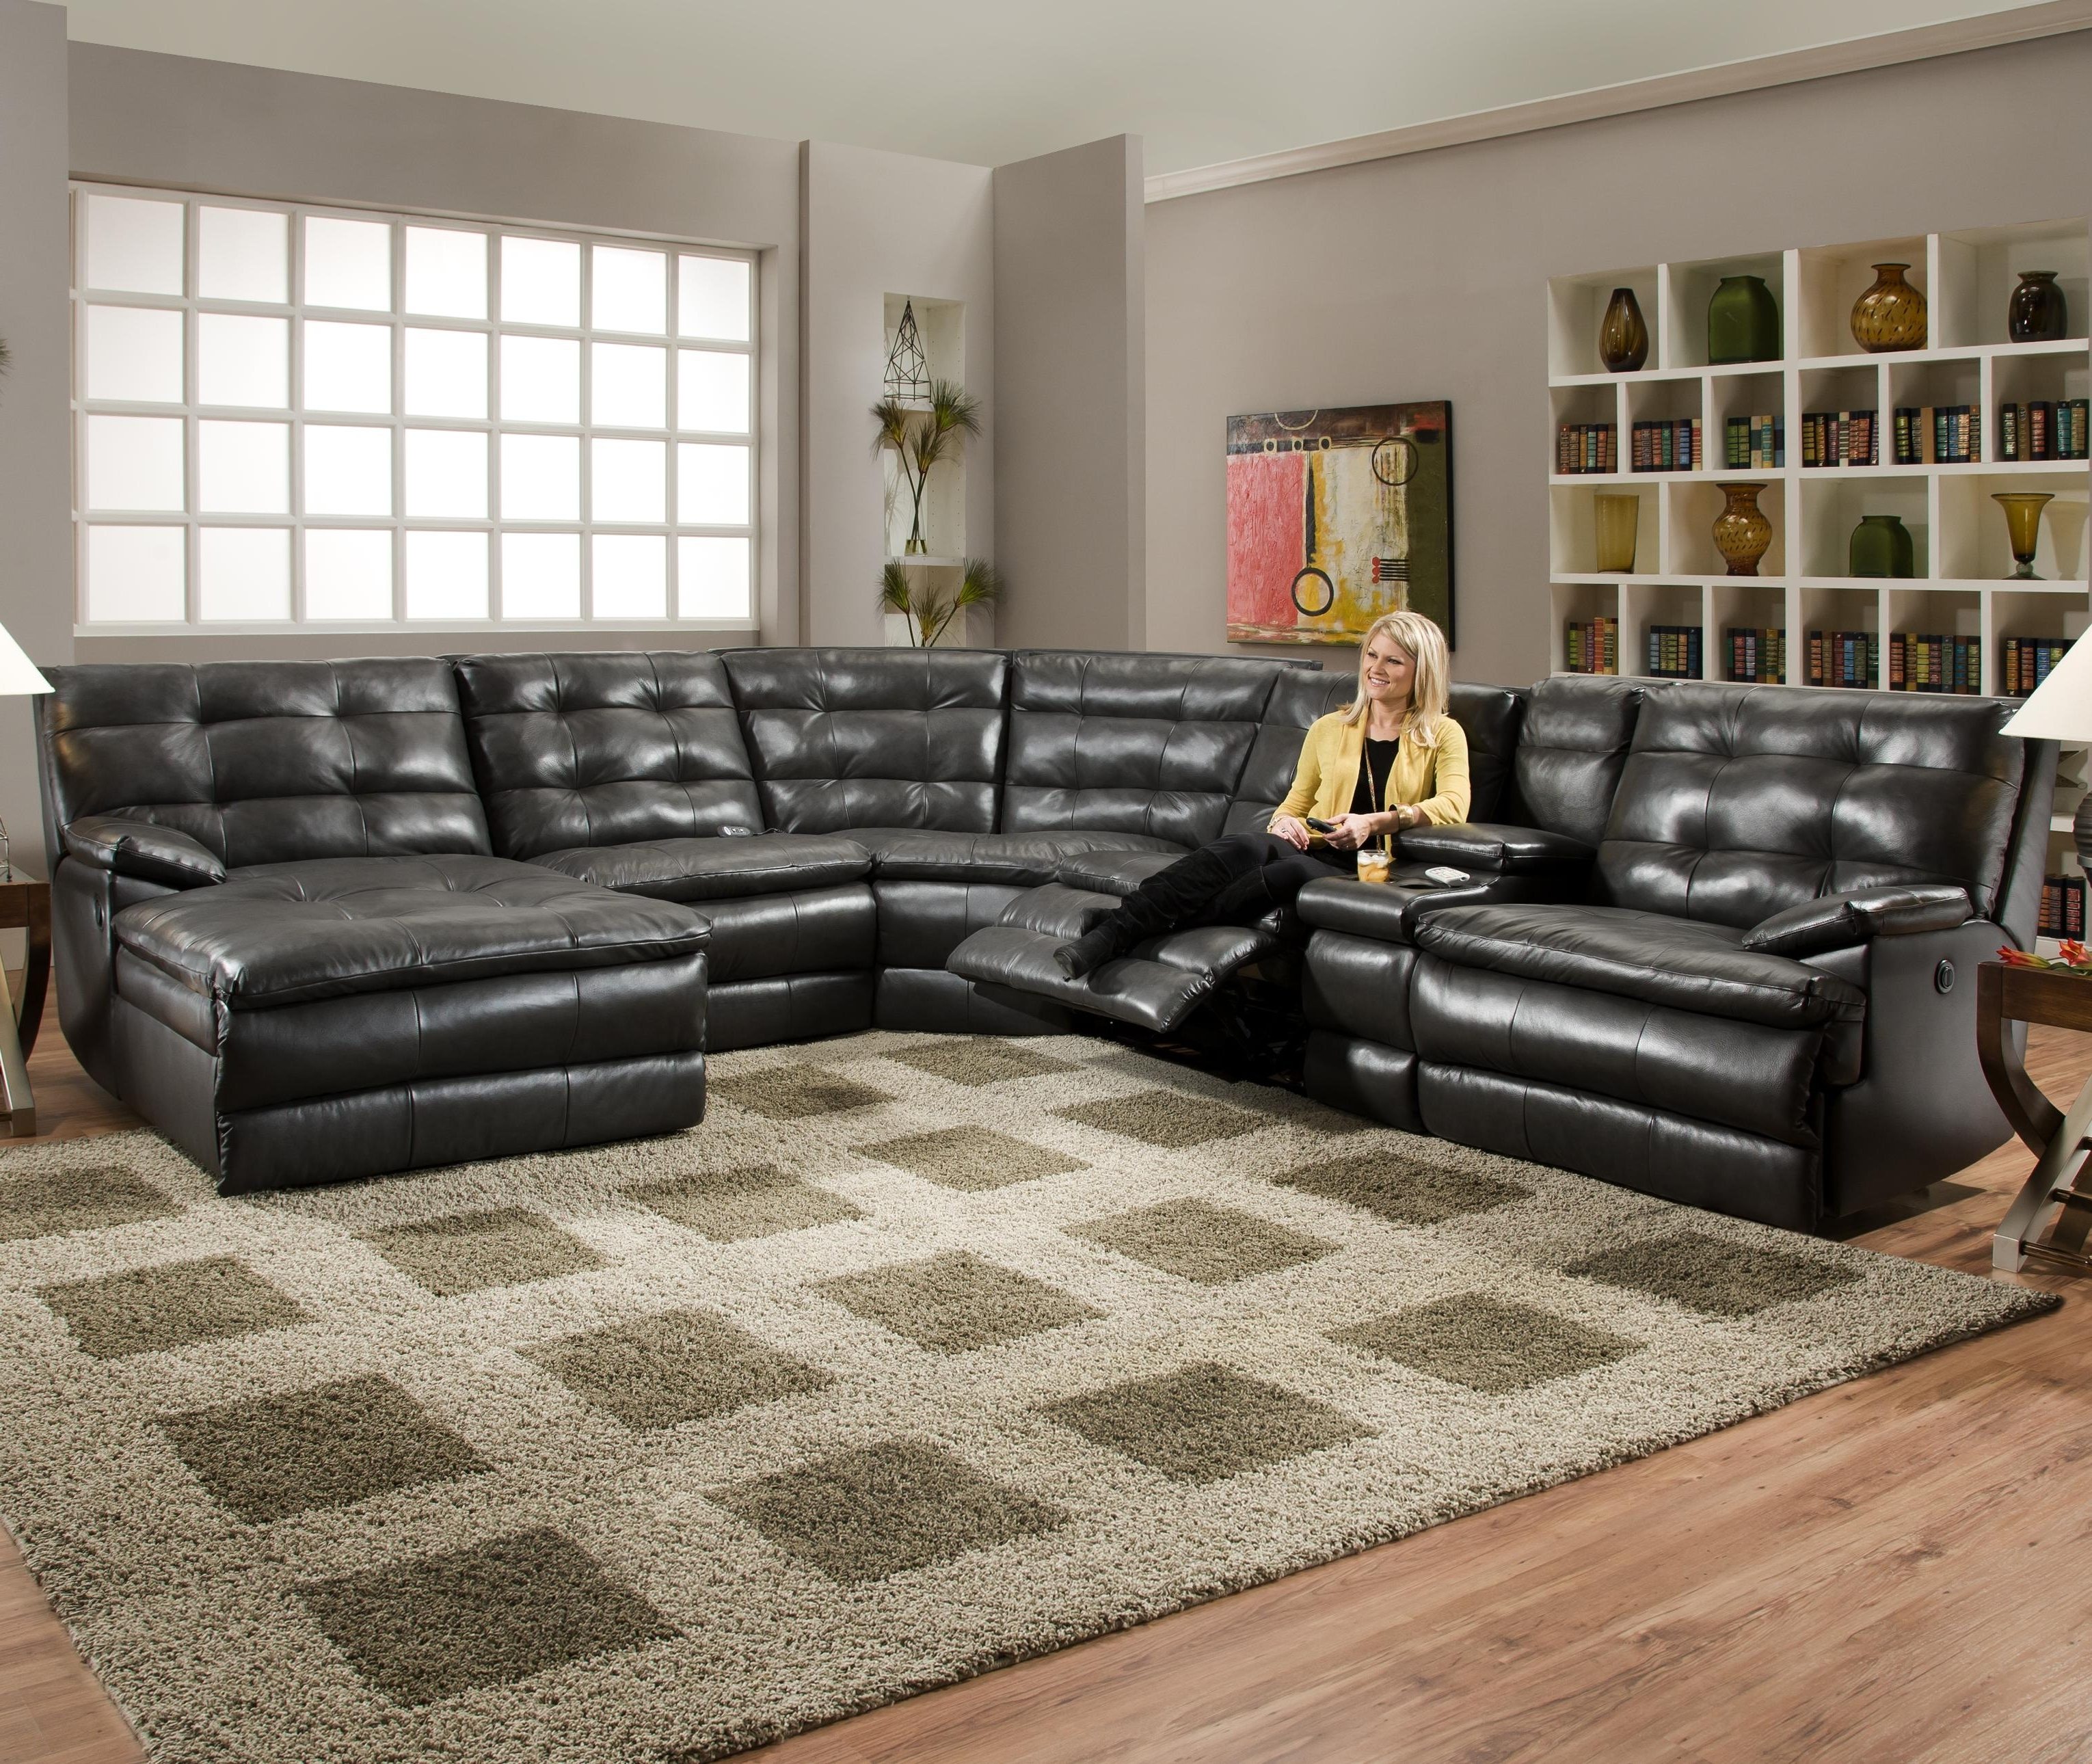 Chaise Recliners Throughout Best And Newest Sectional Sofa Design: Recliner Sectional Sofas Microfiber (View 14 of 15)